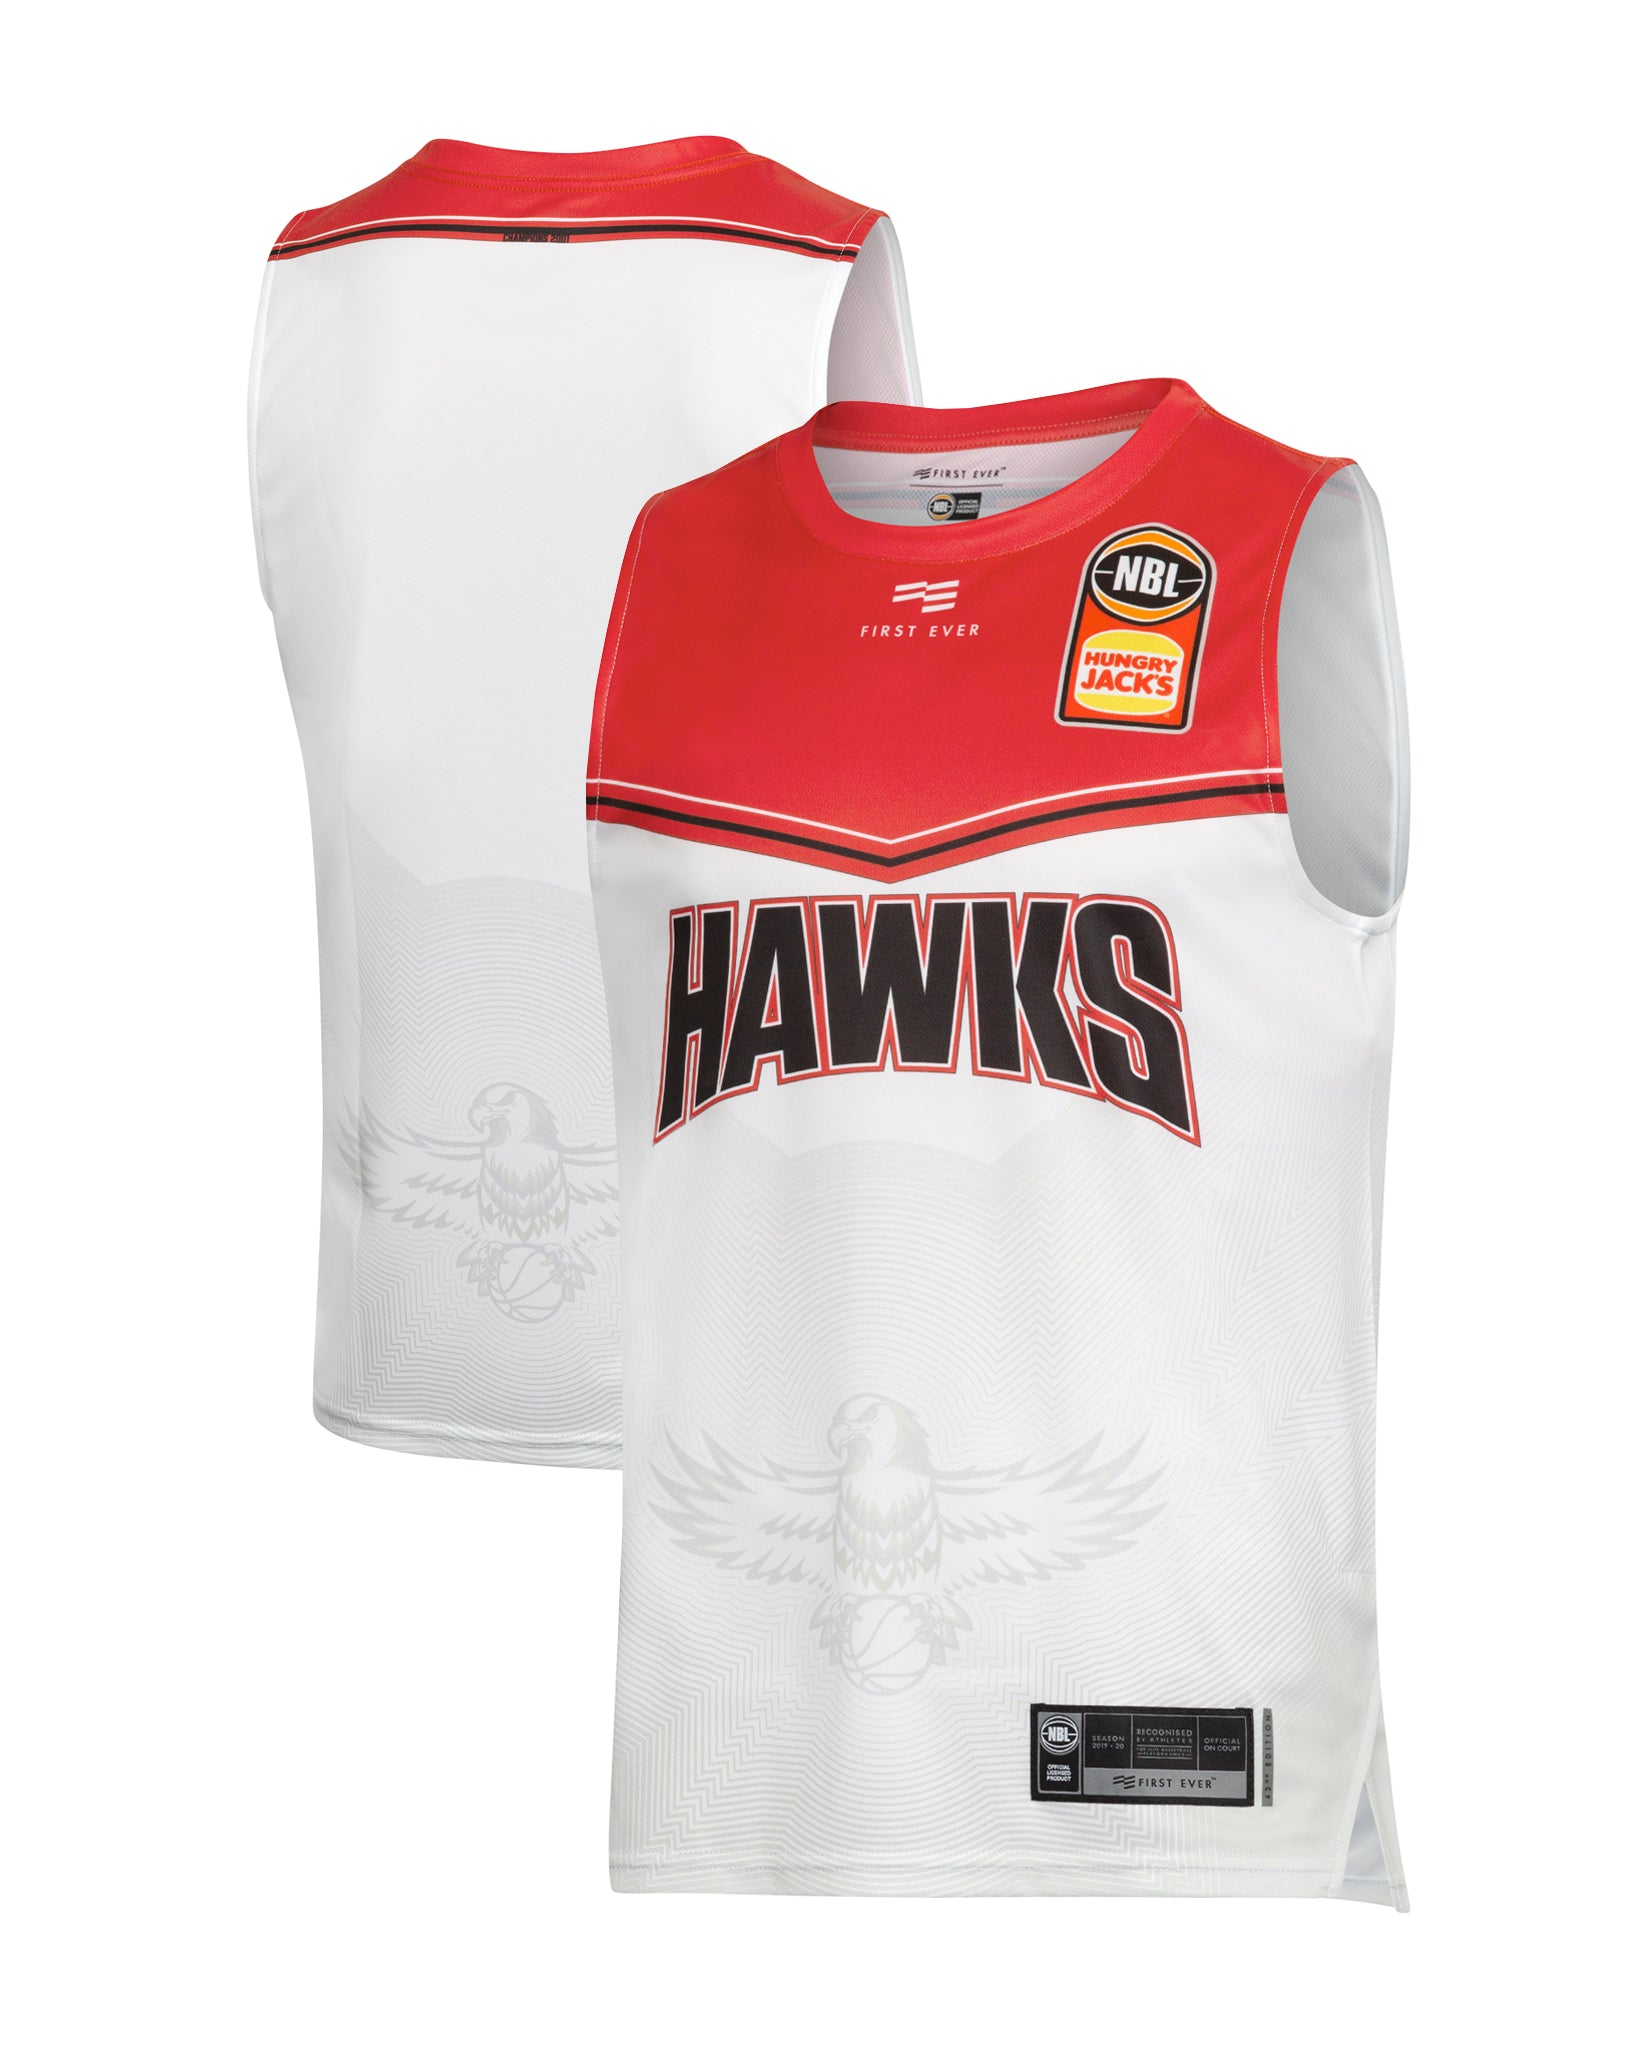 Illawarra Hawks 19/20 Authentic Away Jersey